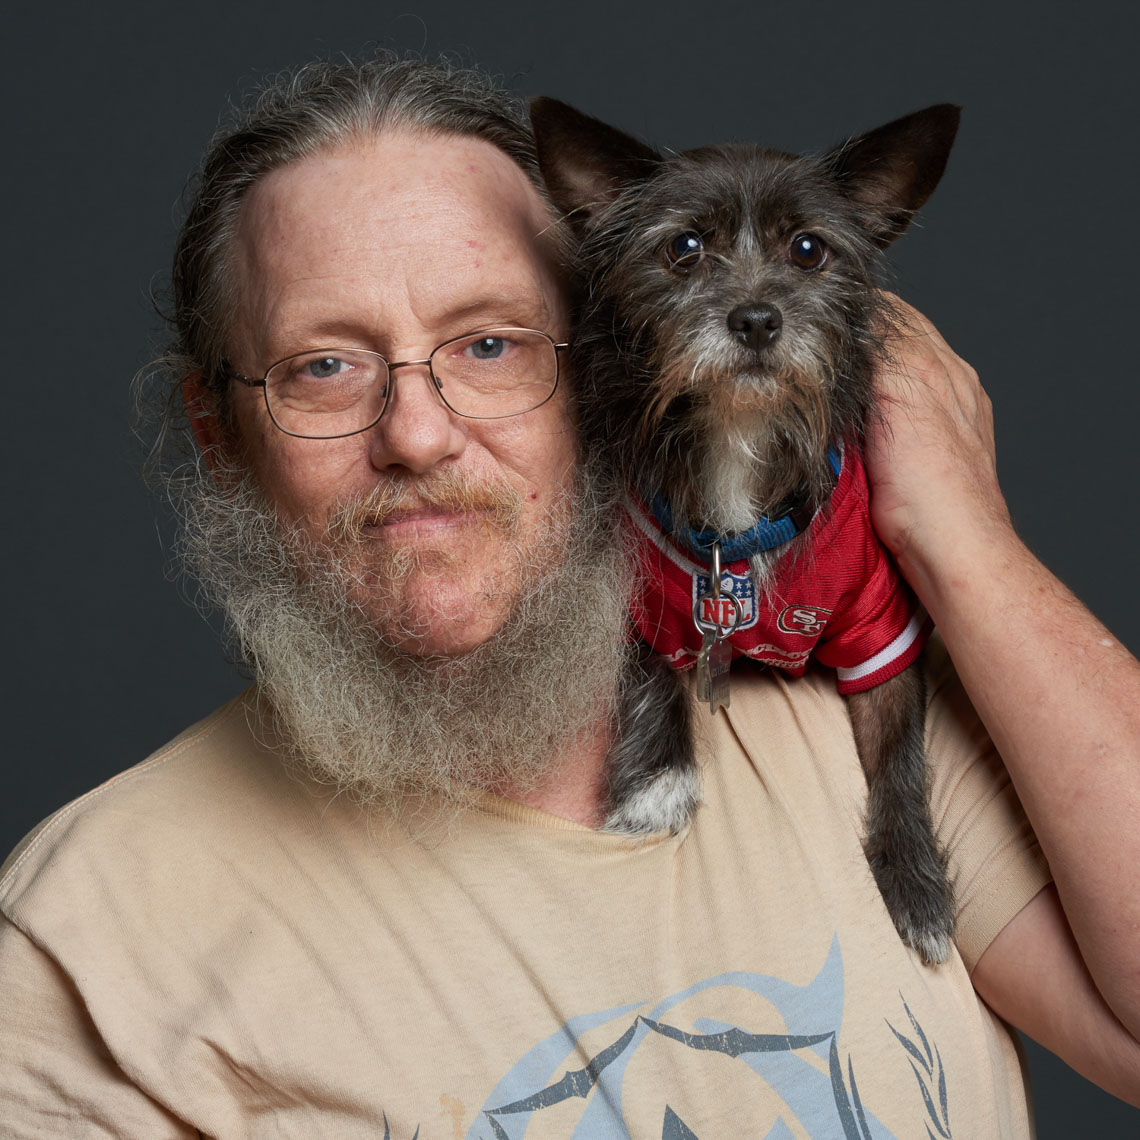 peter.samuels.animal.pet.dog-portrait_VA-25